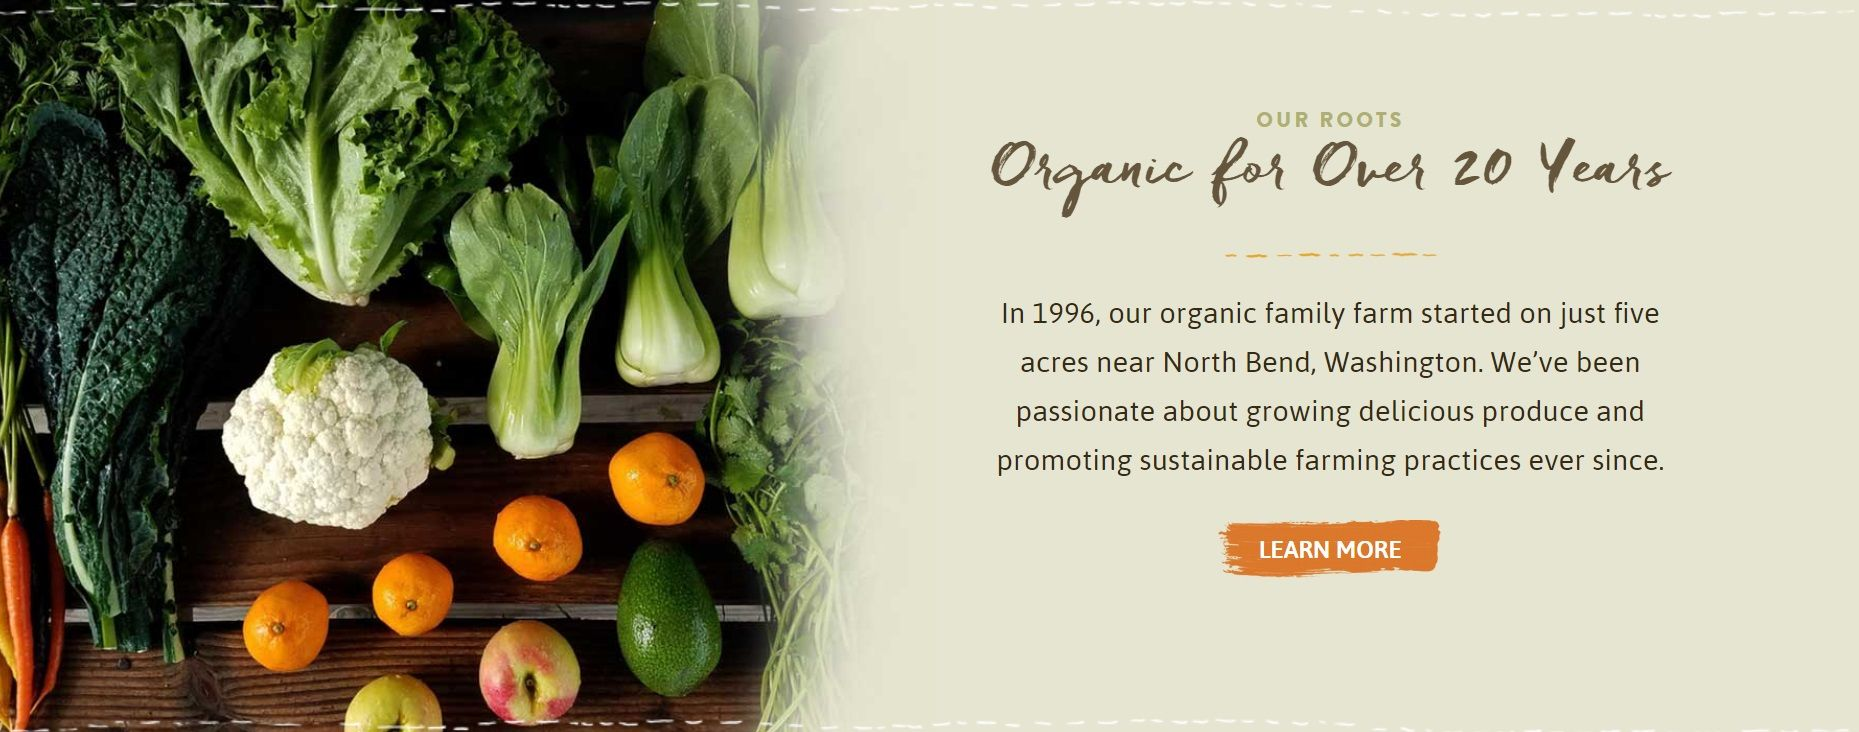 Full Circle Organic for Over 20 Years